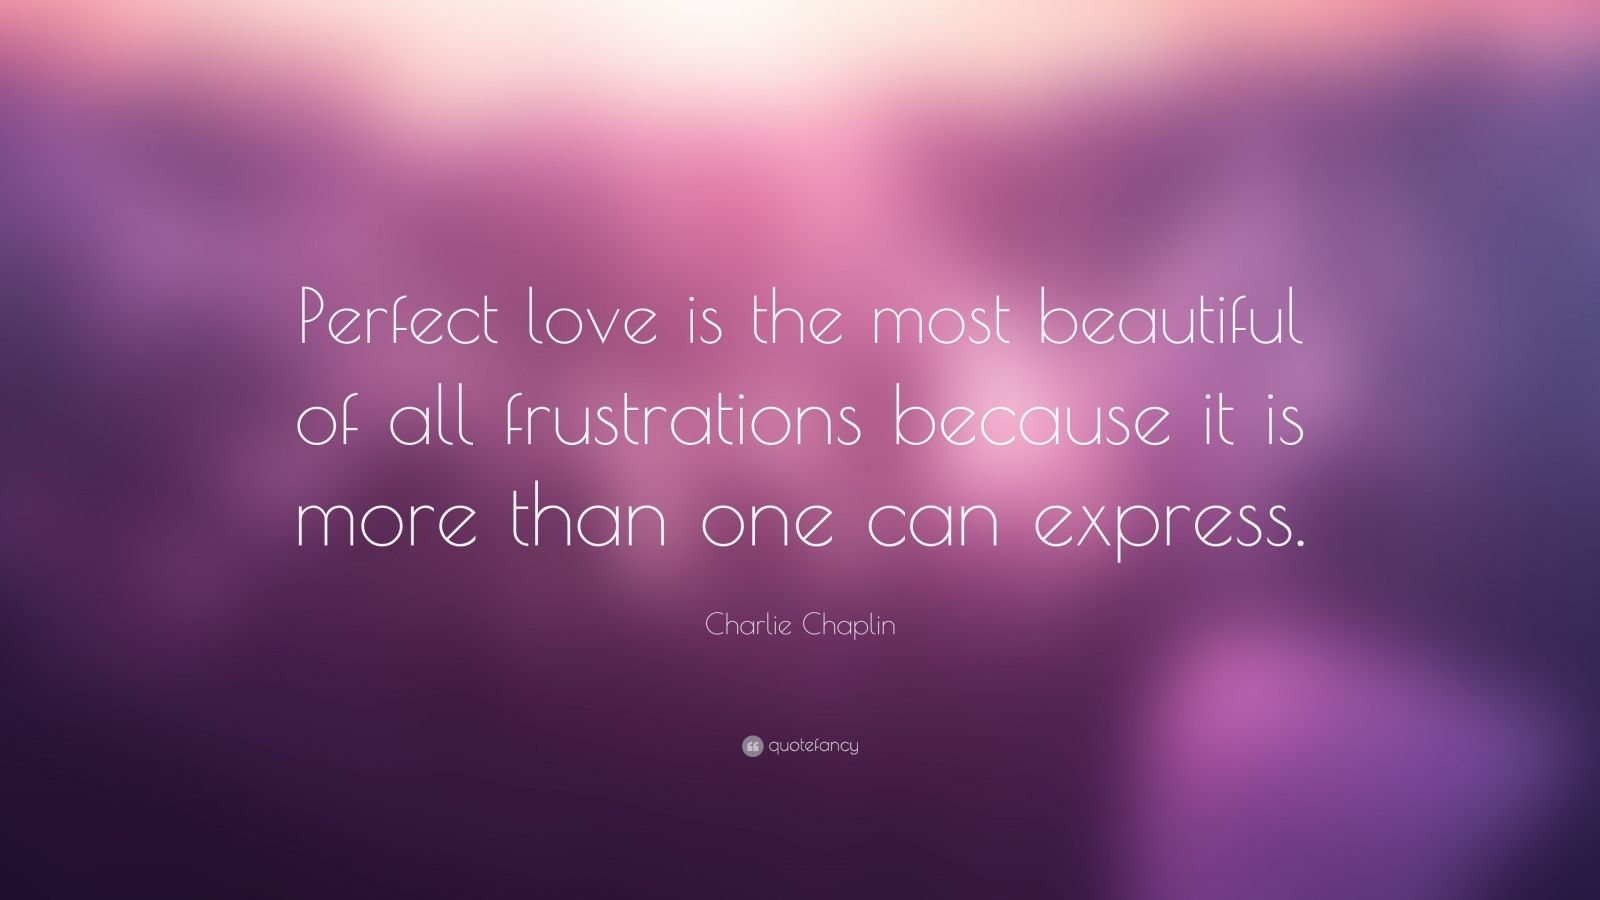 Perfect Love Quotes Wallpaper : charlie chaplin Quote: ?Perfect love is the most beautiful of all frustrations because it is ...